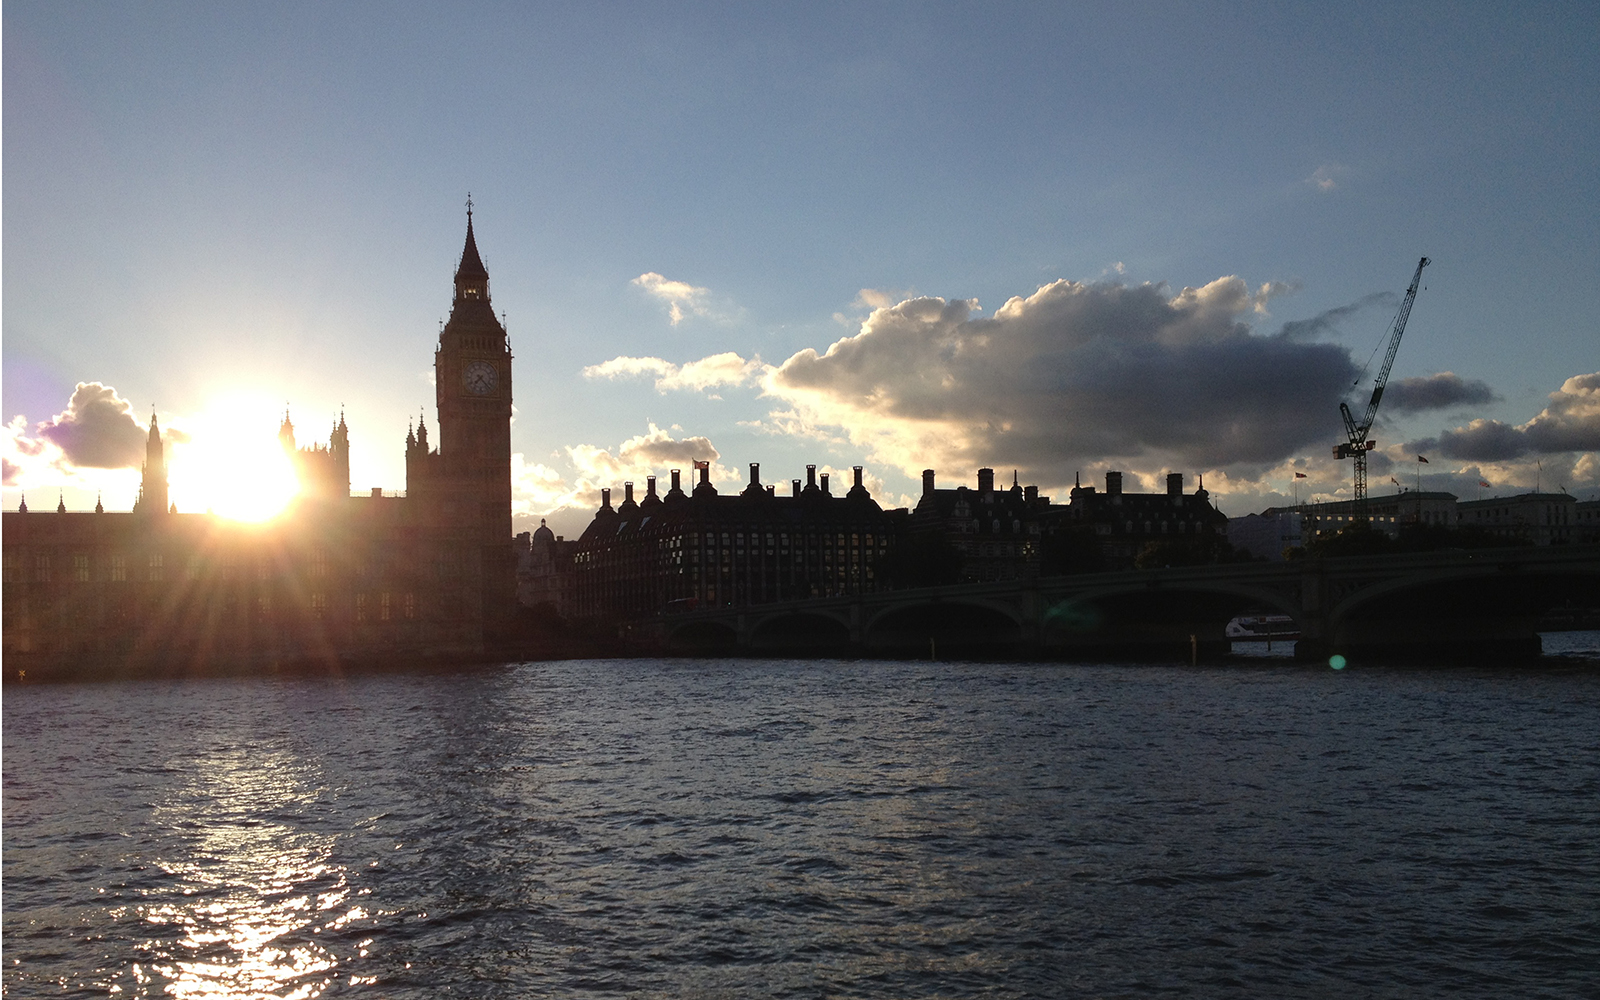 Big Ben Sunset 23 August 2015